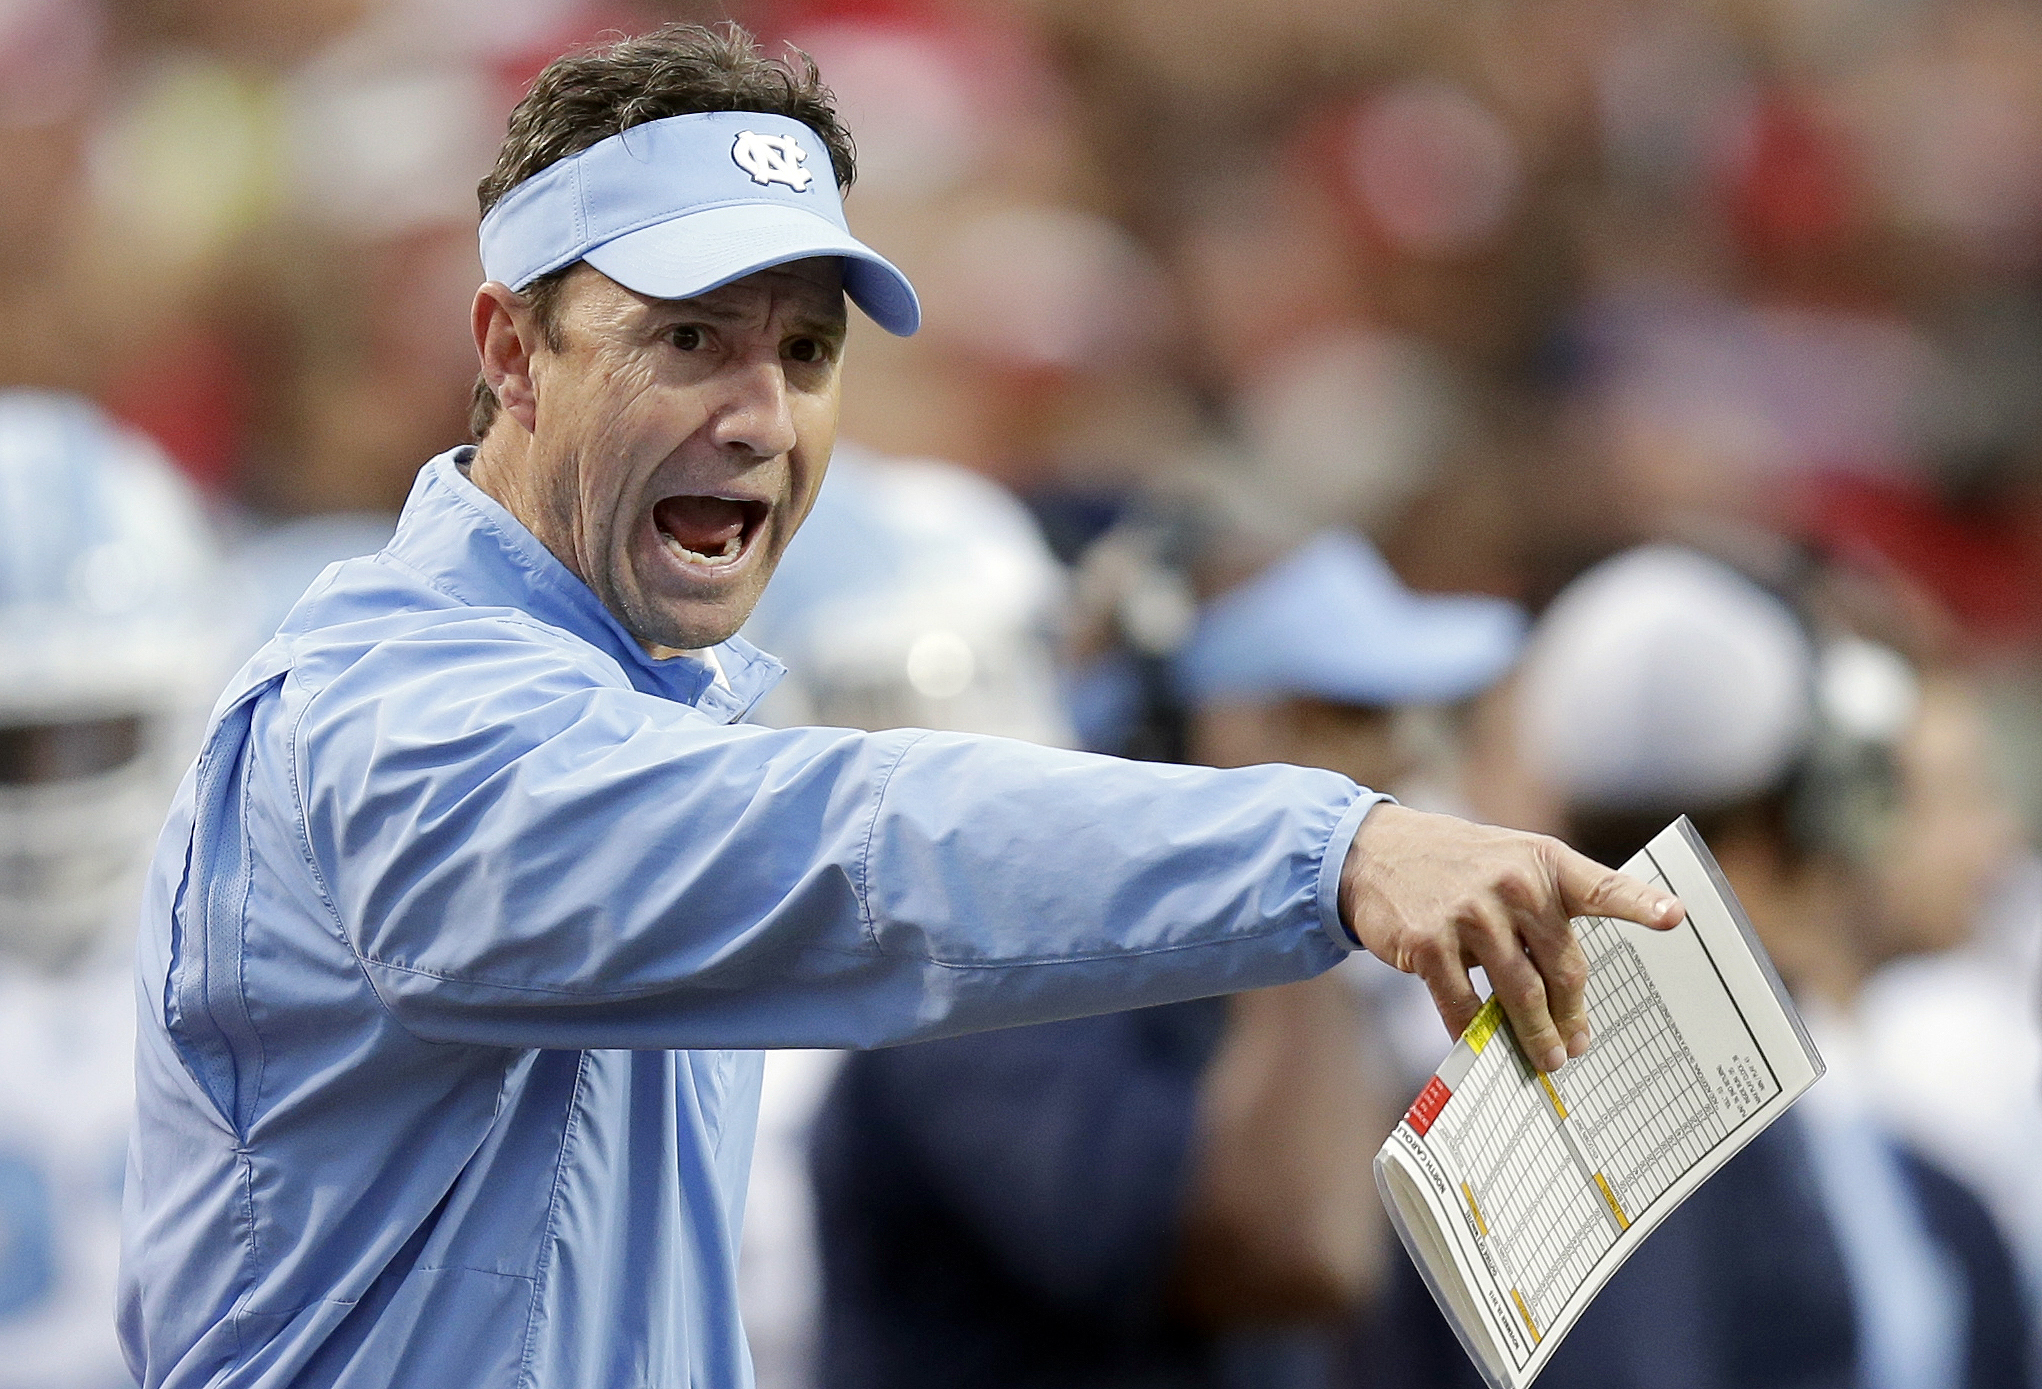 FILE - In this Nov. 28, 2015 file photo, North Carolina coach Larry Fedora yells at an official during the first half an NCAA college football game against North Carolina State in Raleigh, N.C. UNC coach Larry Fedora. Fedora hasn't committed to who will c